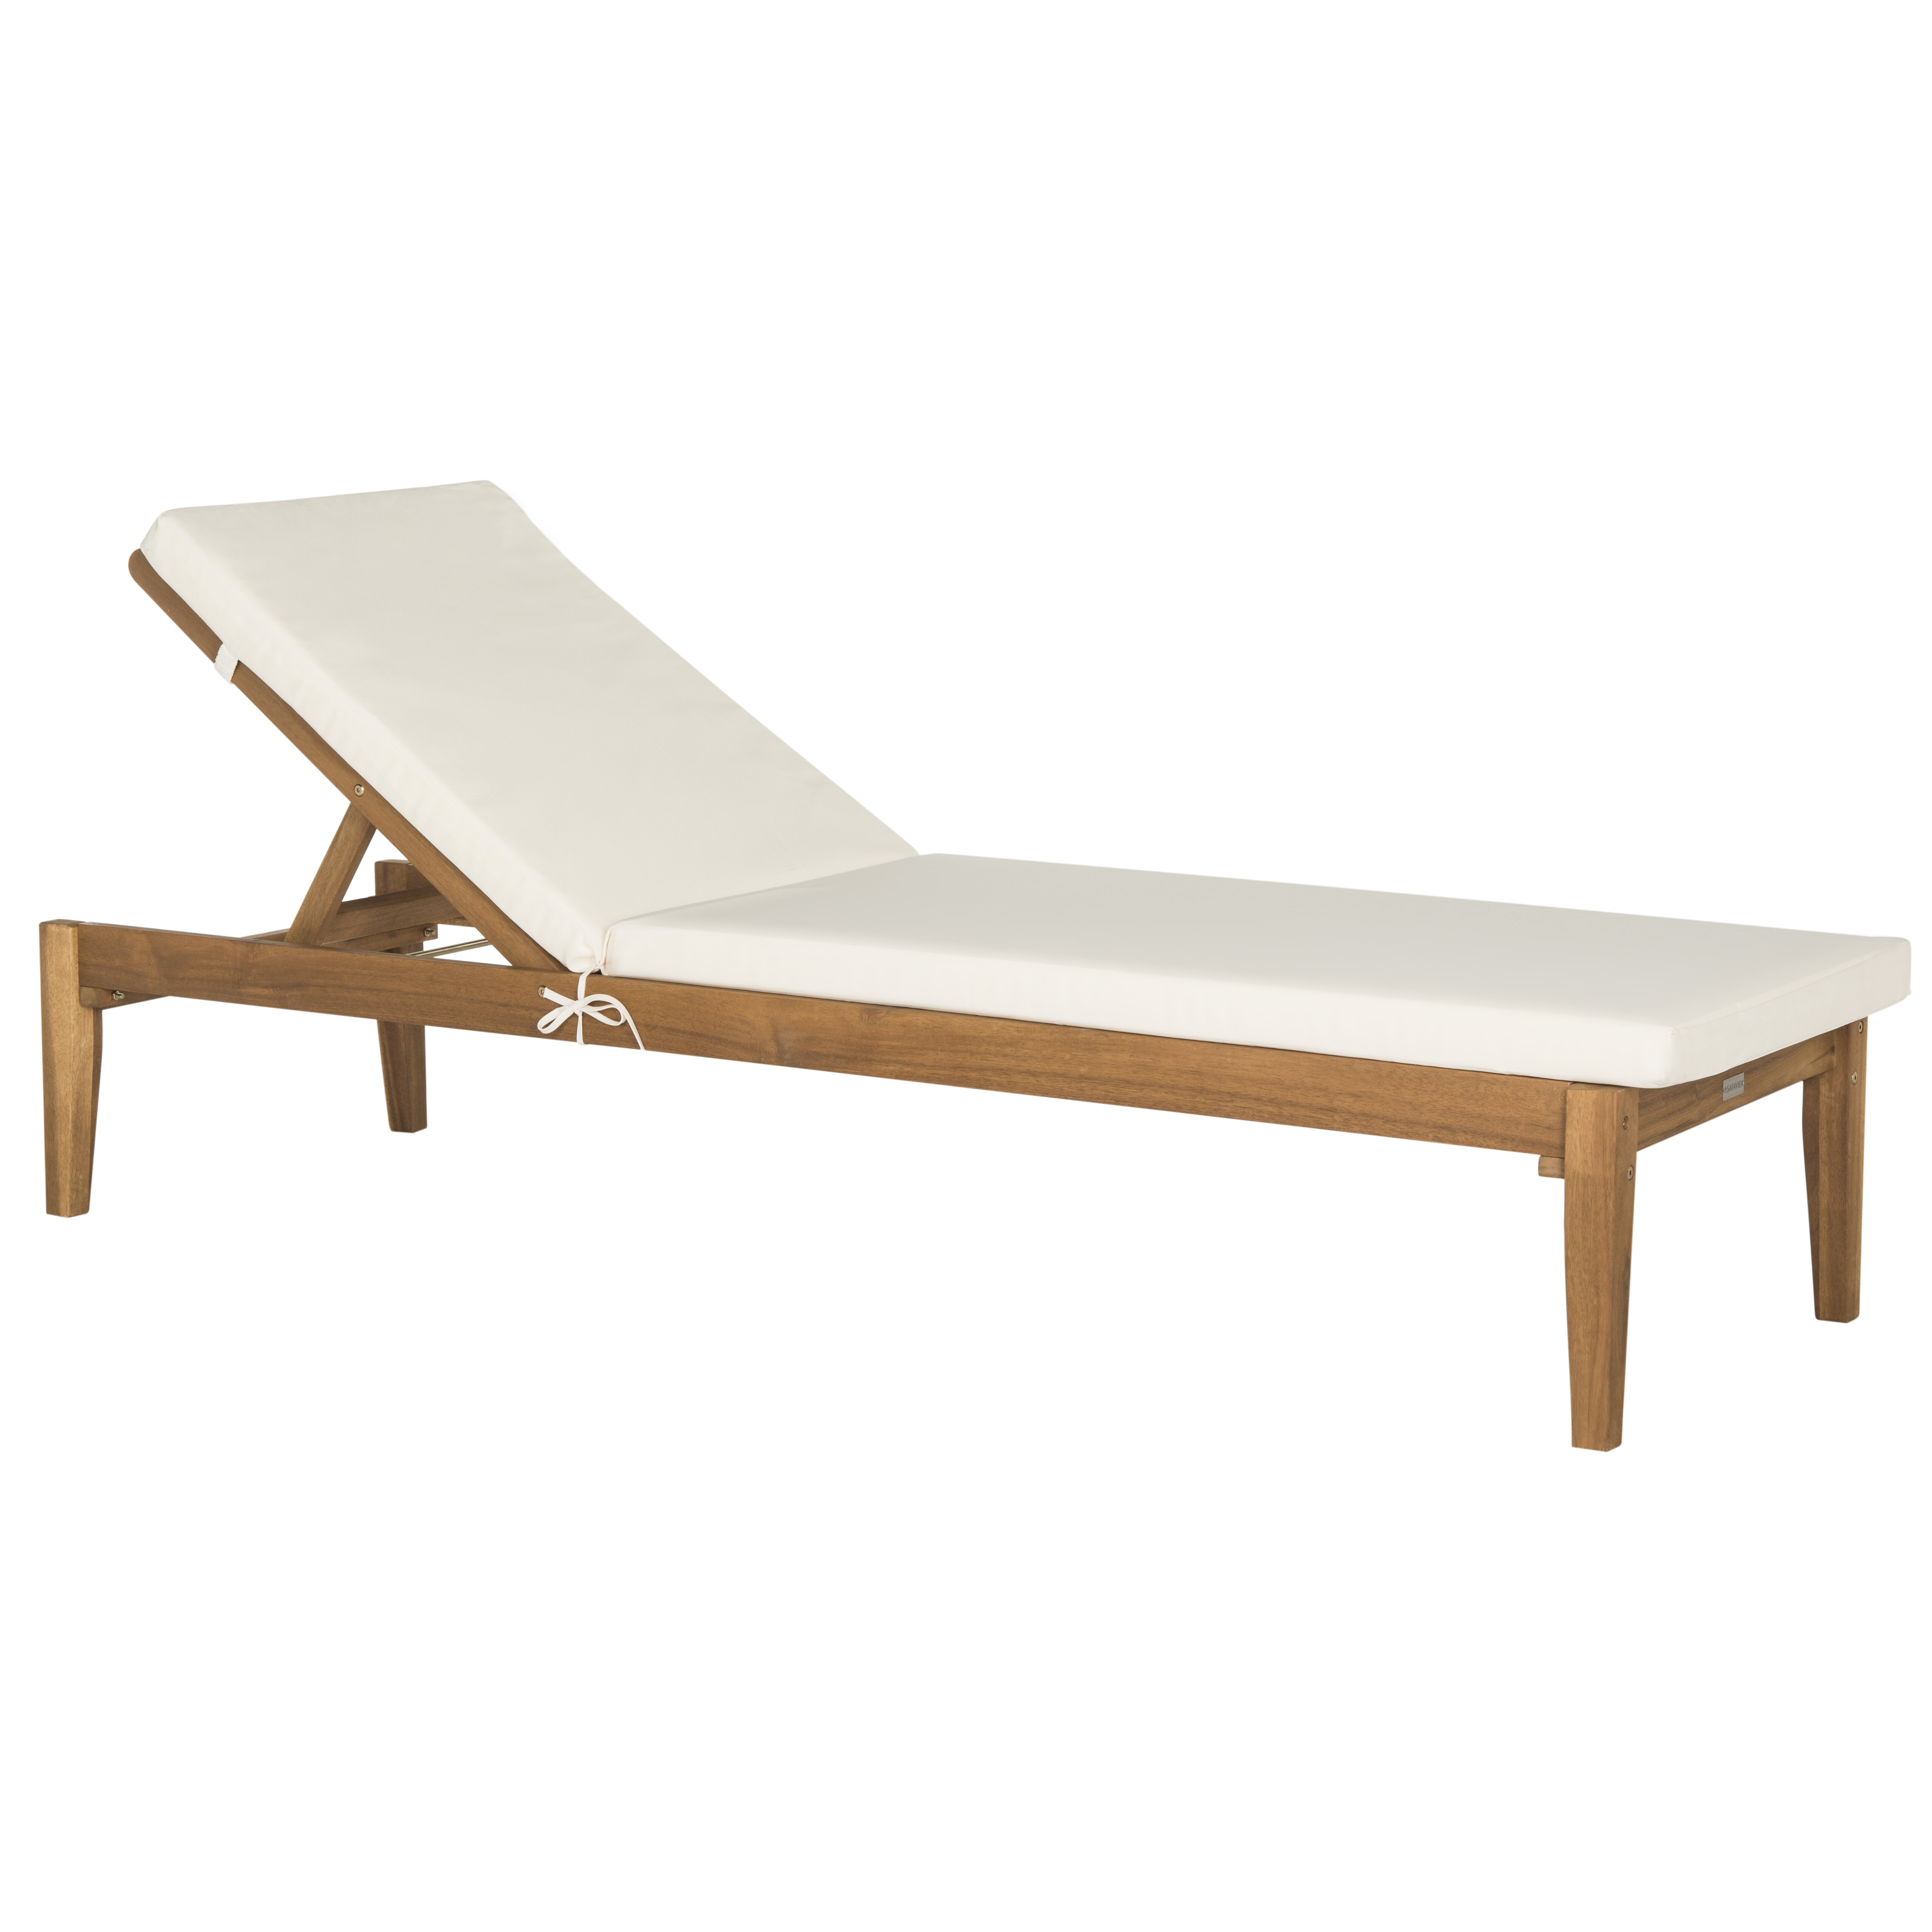 Darby home co benningfield chaise lounge reviews wayfair for Chaise lounge company